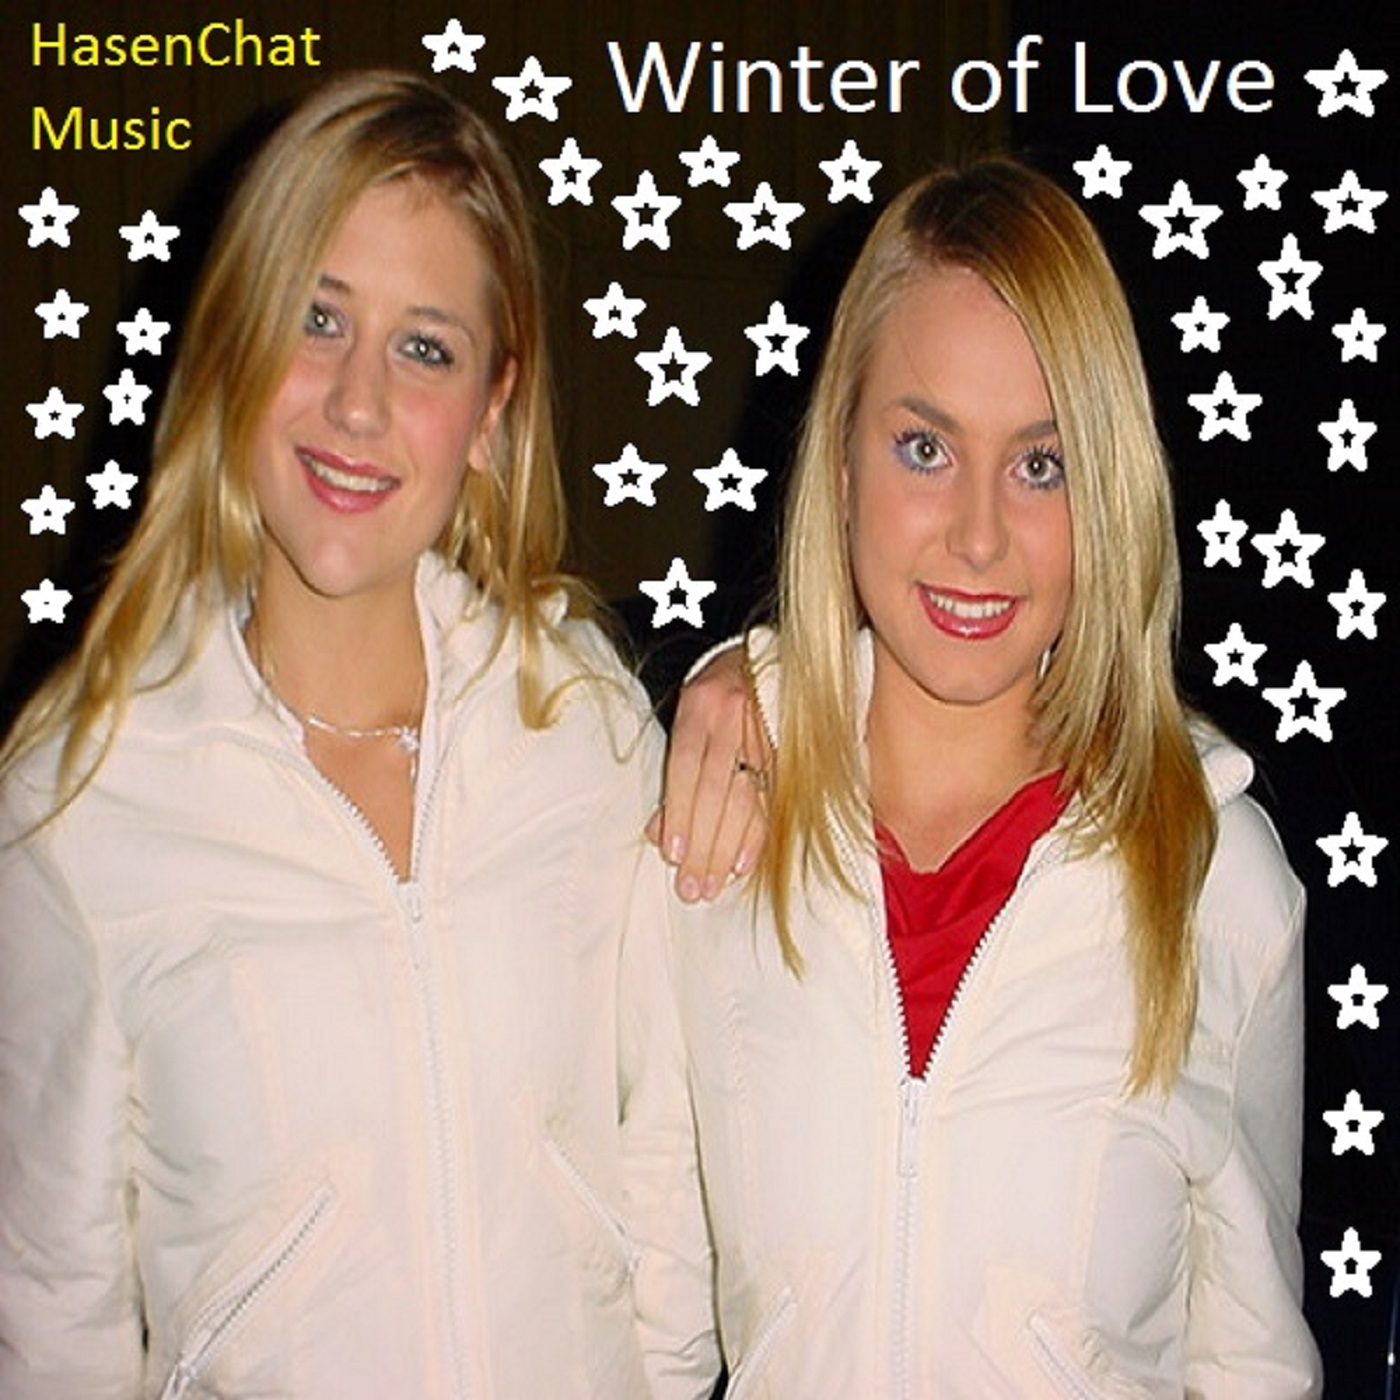 HasenChat Music - Winter of Love